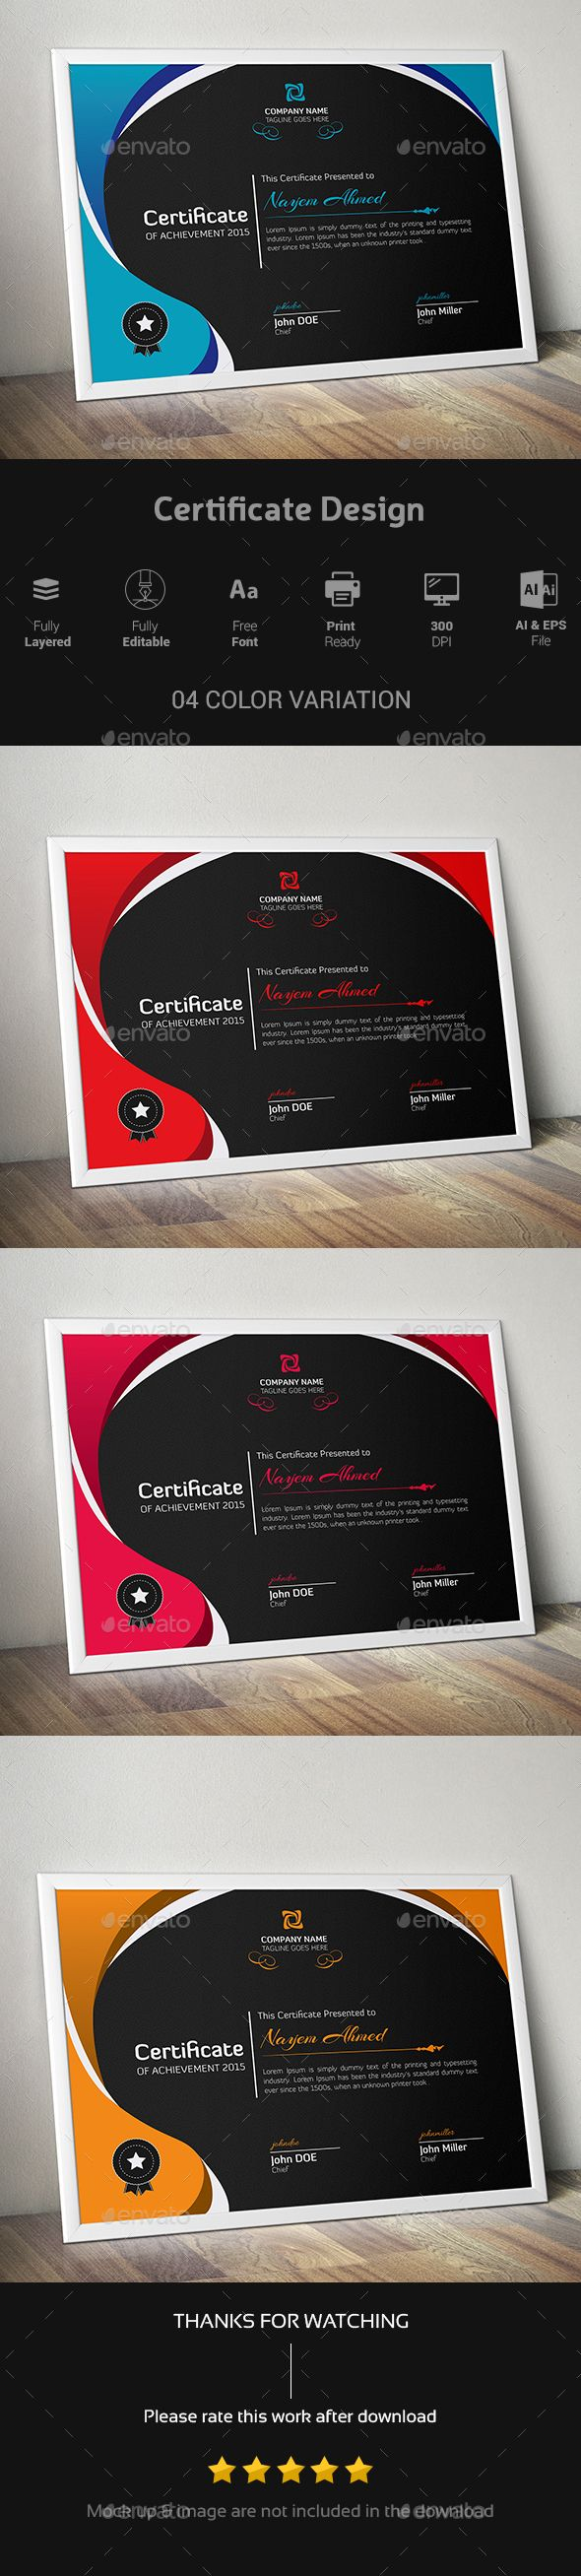 23 best certificate template design images on pinterest website certificate design certificates stationery xflitez Image collections